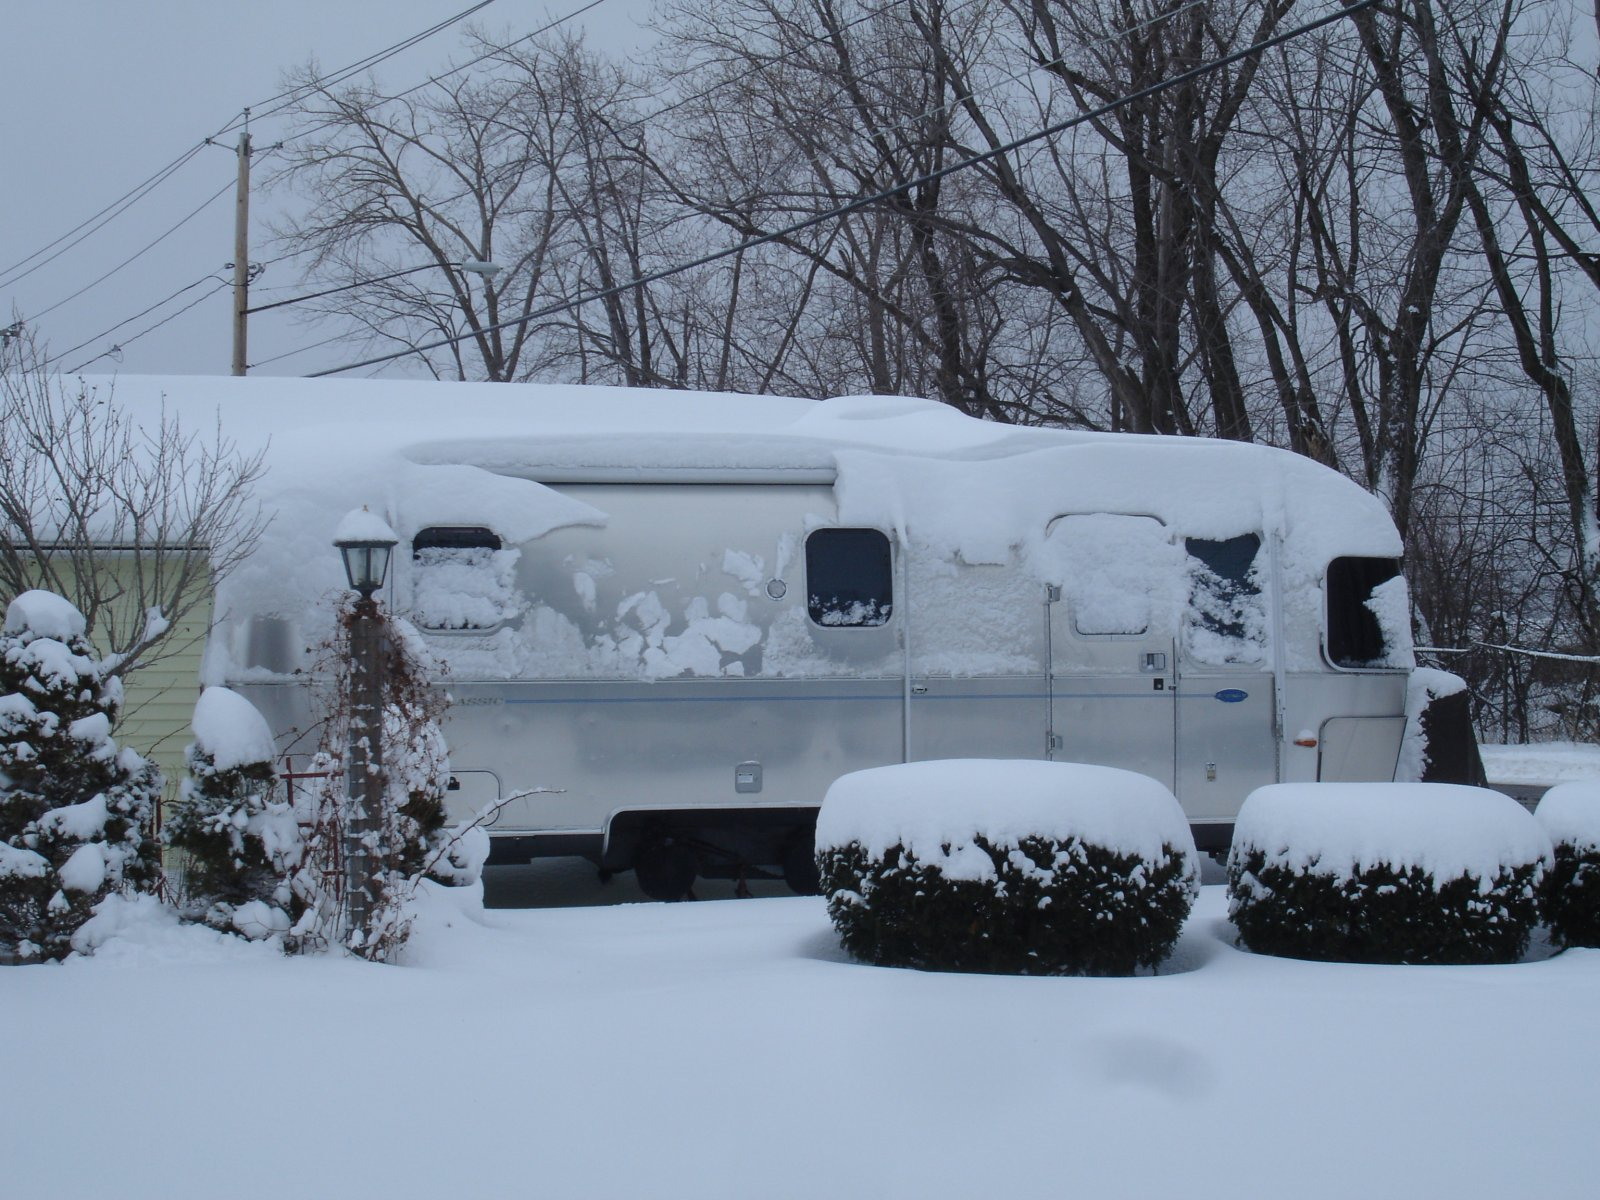 Click image for larger version  Name:2008 airstream 005.jpg Views:89 Size:349.4 KB ID:73217